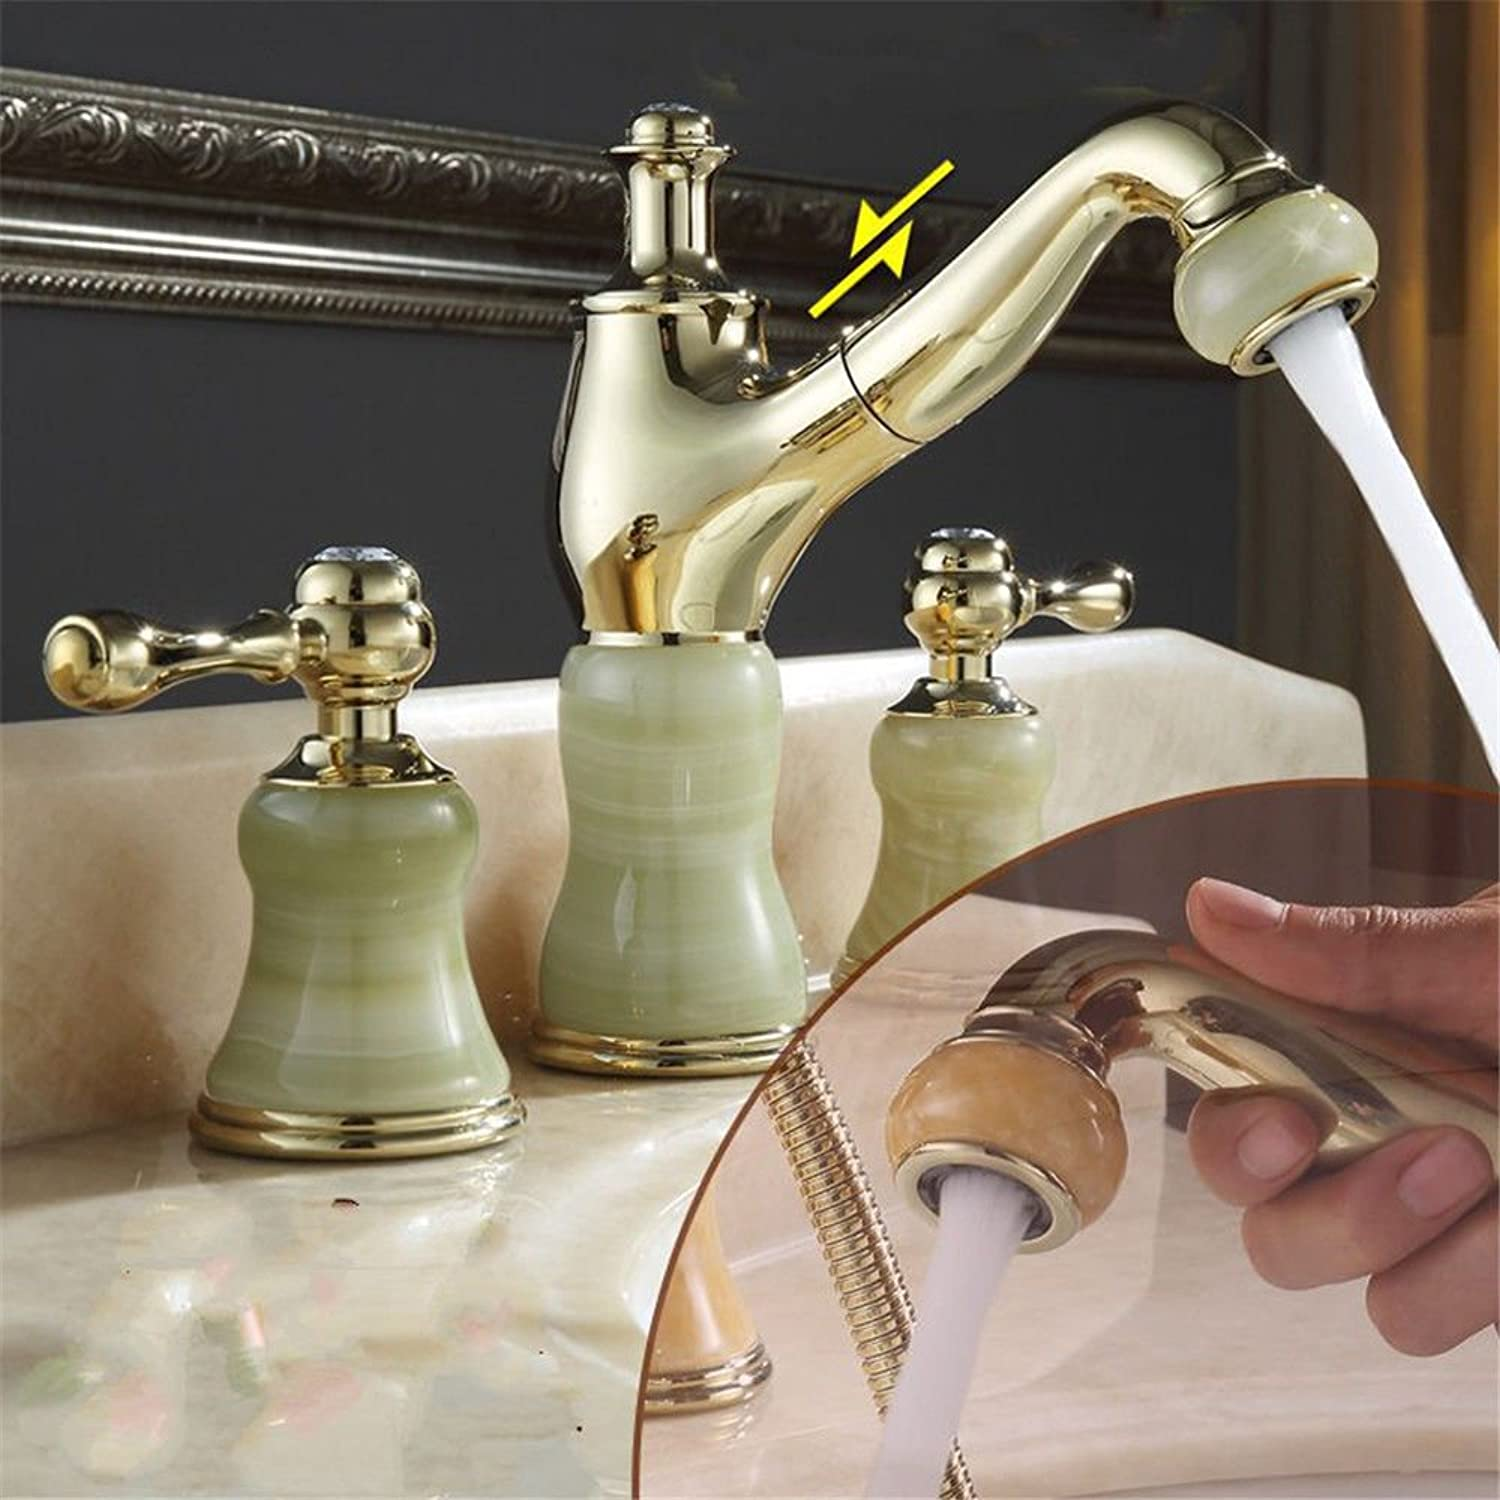 Hlluya Professional Sink Mixer Tap Kitchen Faucet Brass Body antique pull hot and cold faucet 3-hole wash basin jade gold basin taps,